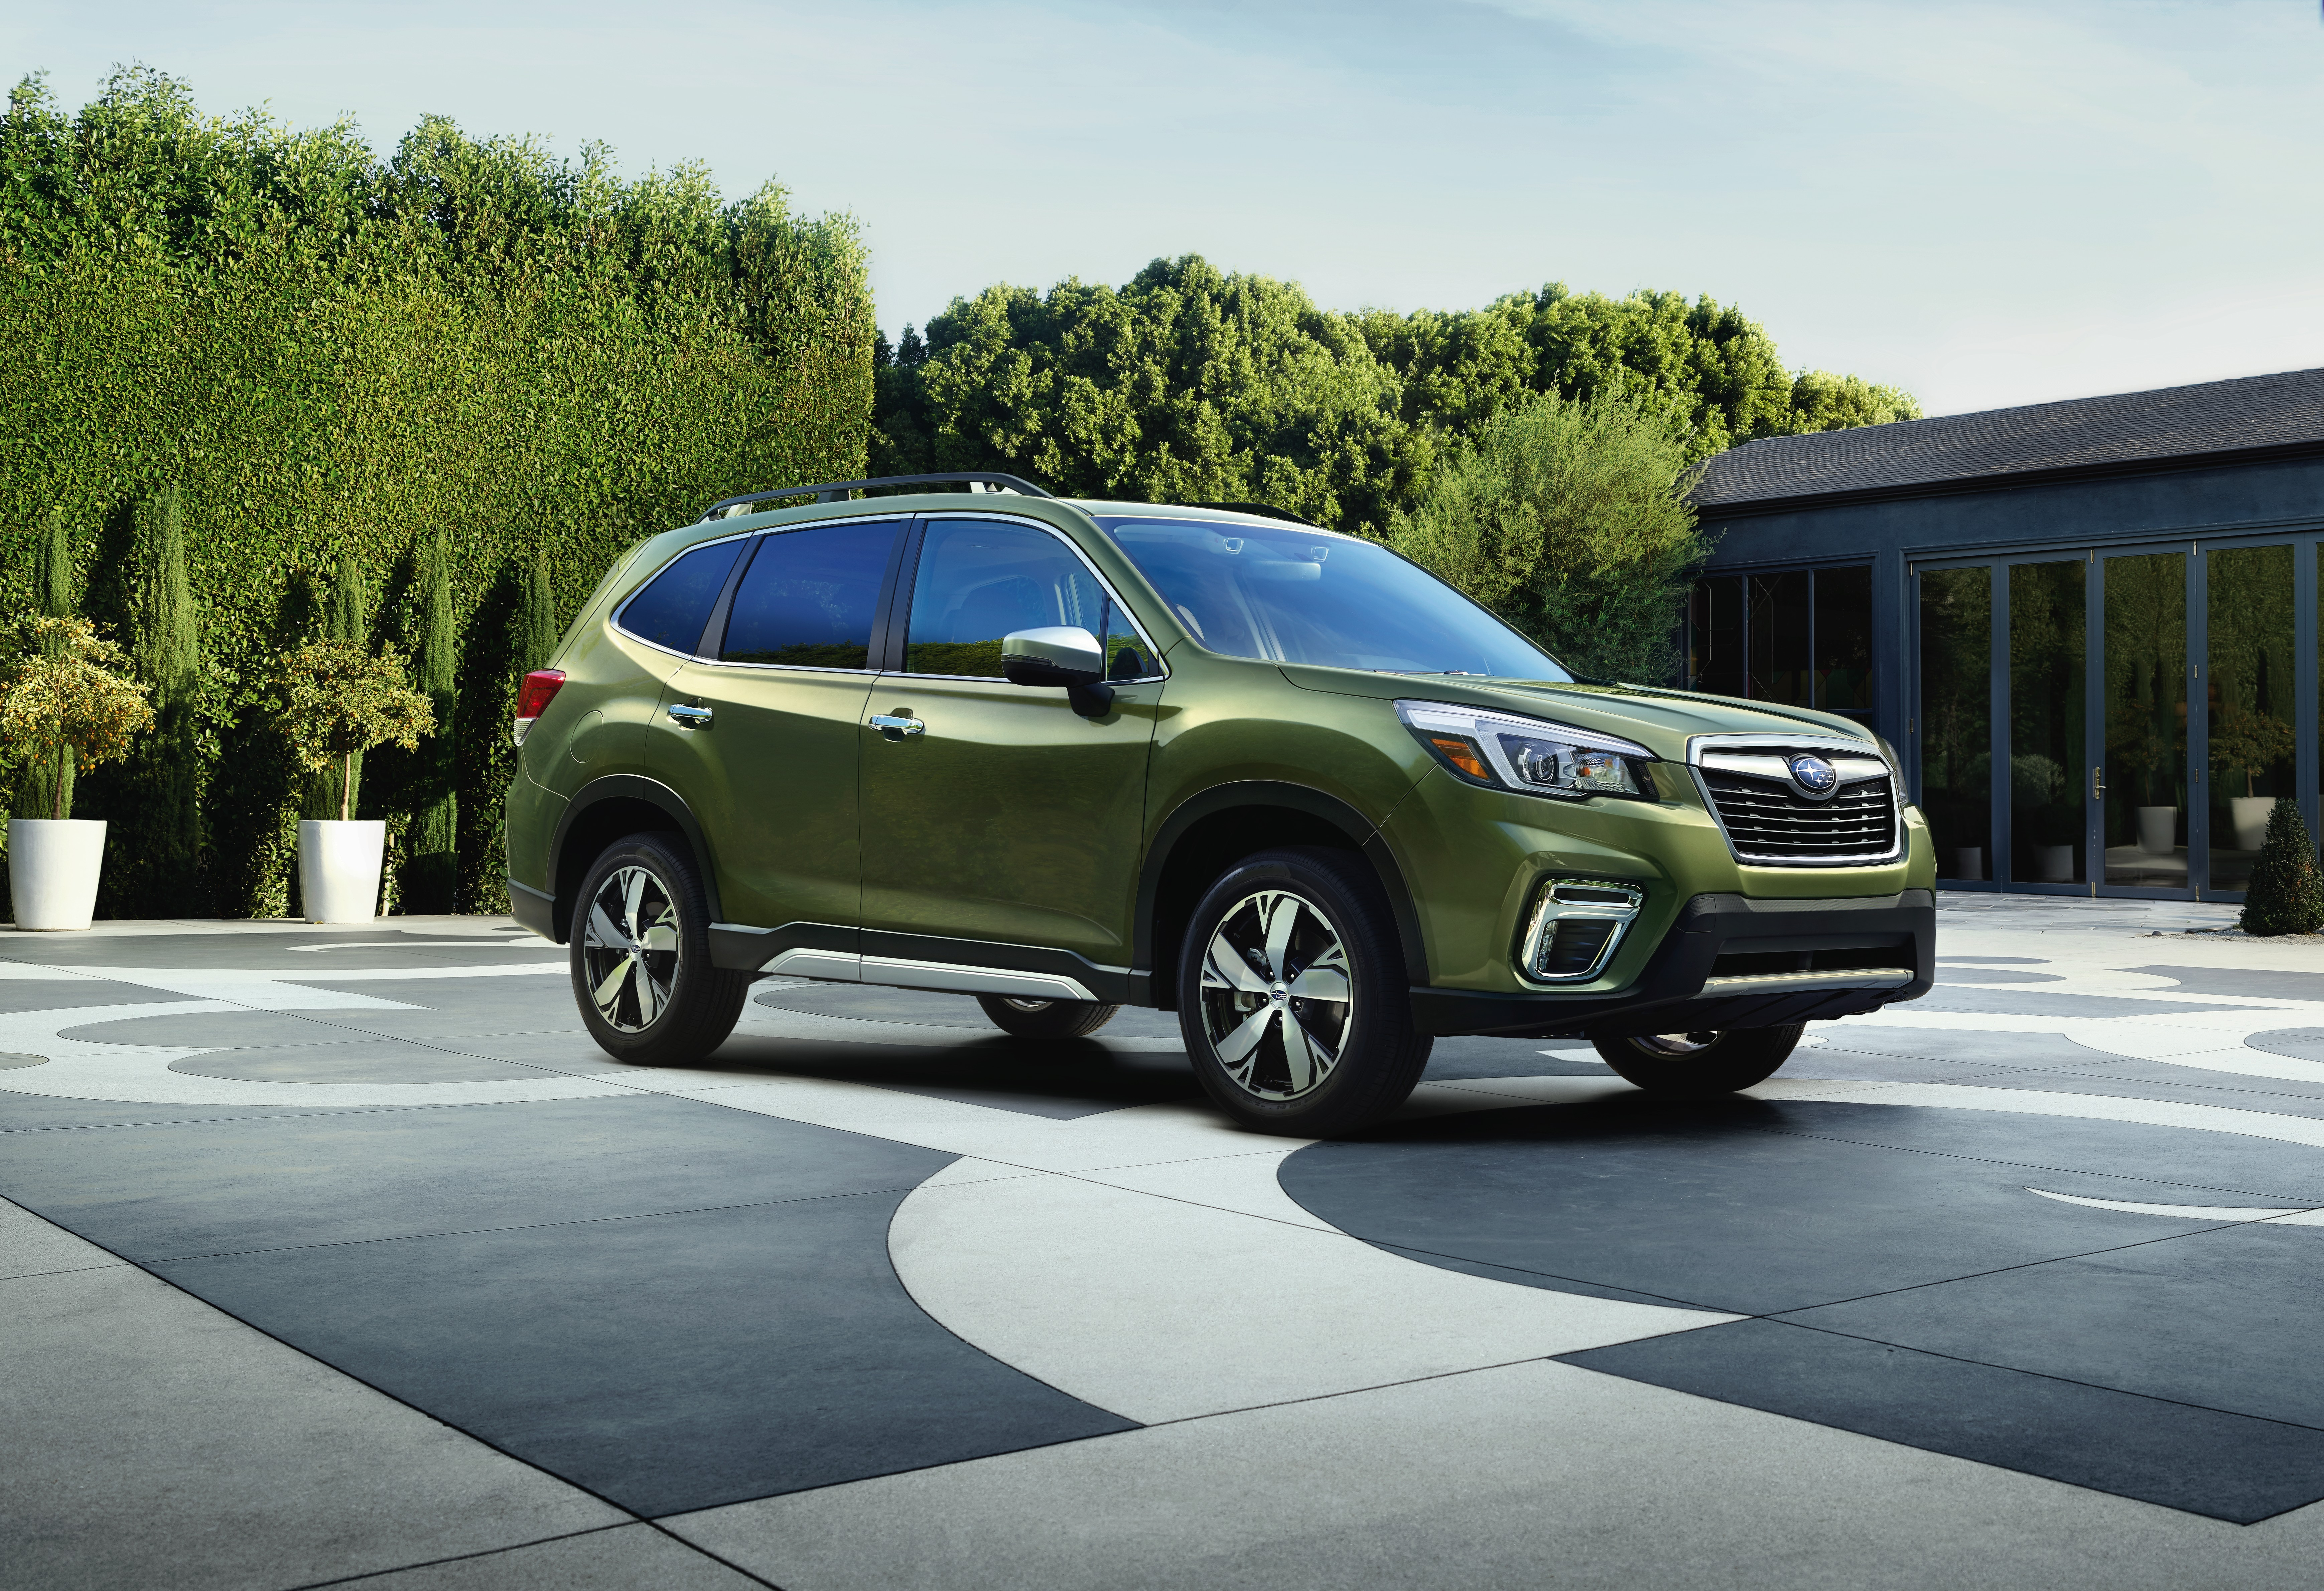 2019 Subaru Forester 13 Ultra High Strength Steel Has Lots Of